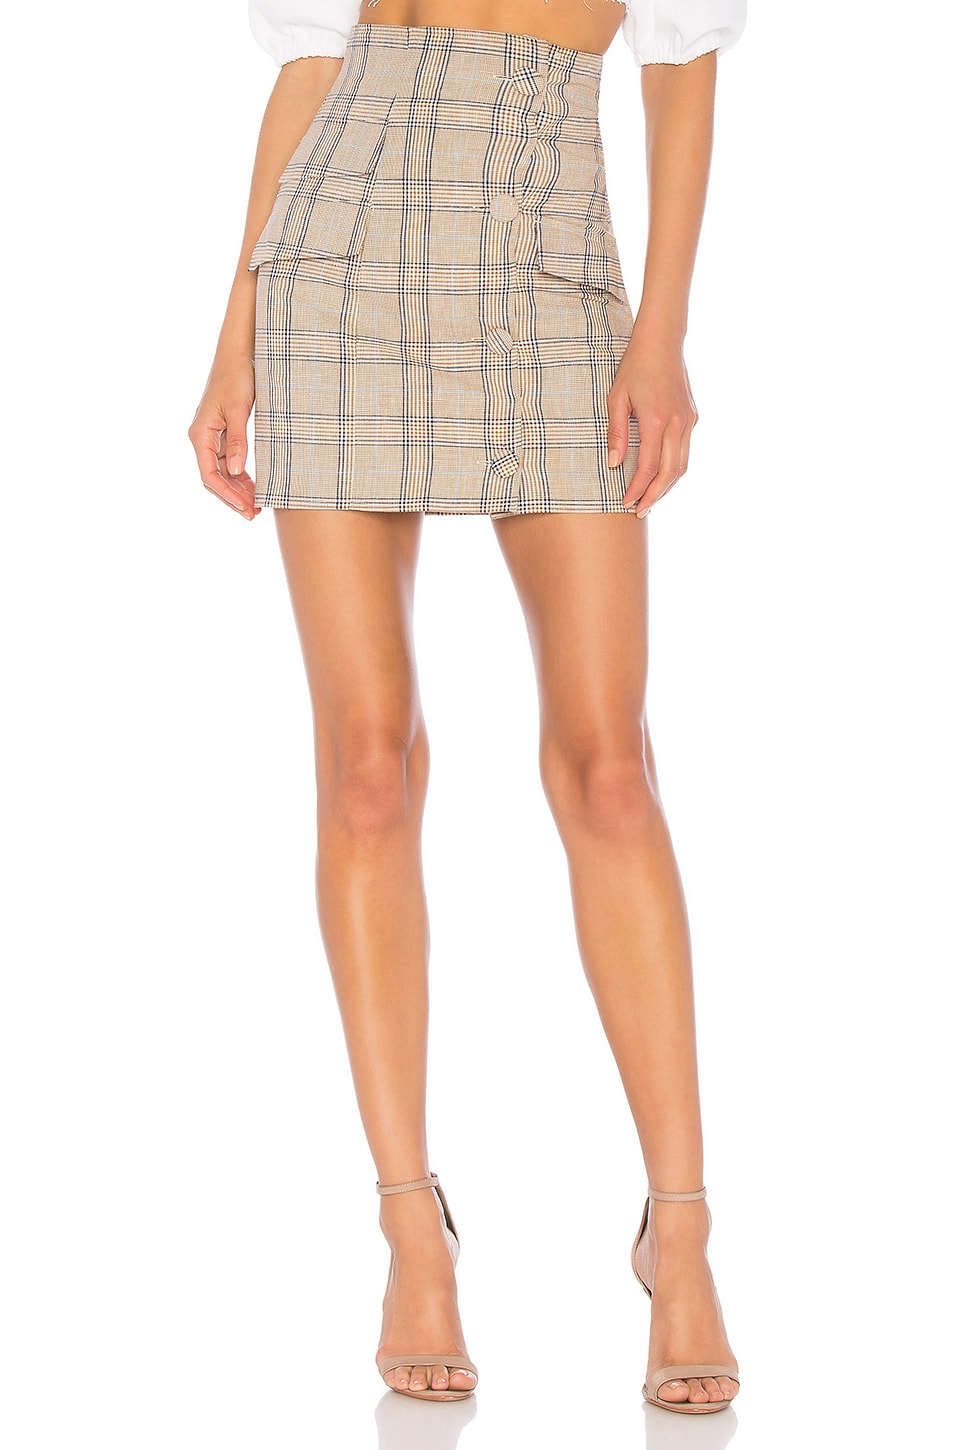 Lovers + Friends Lala Mini Skirt in Walnut